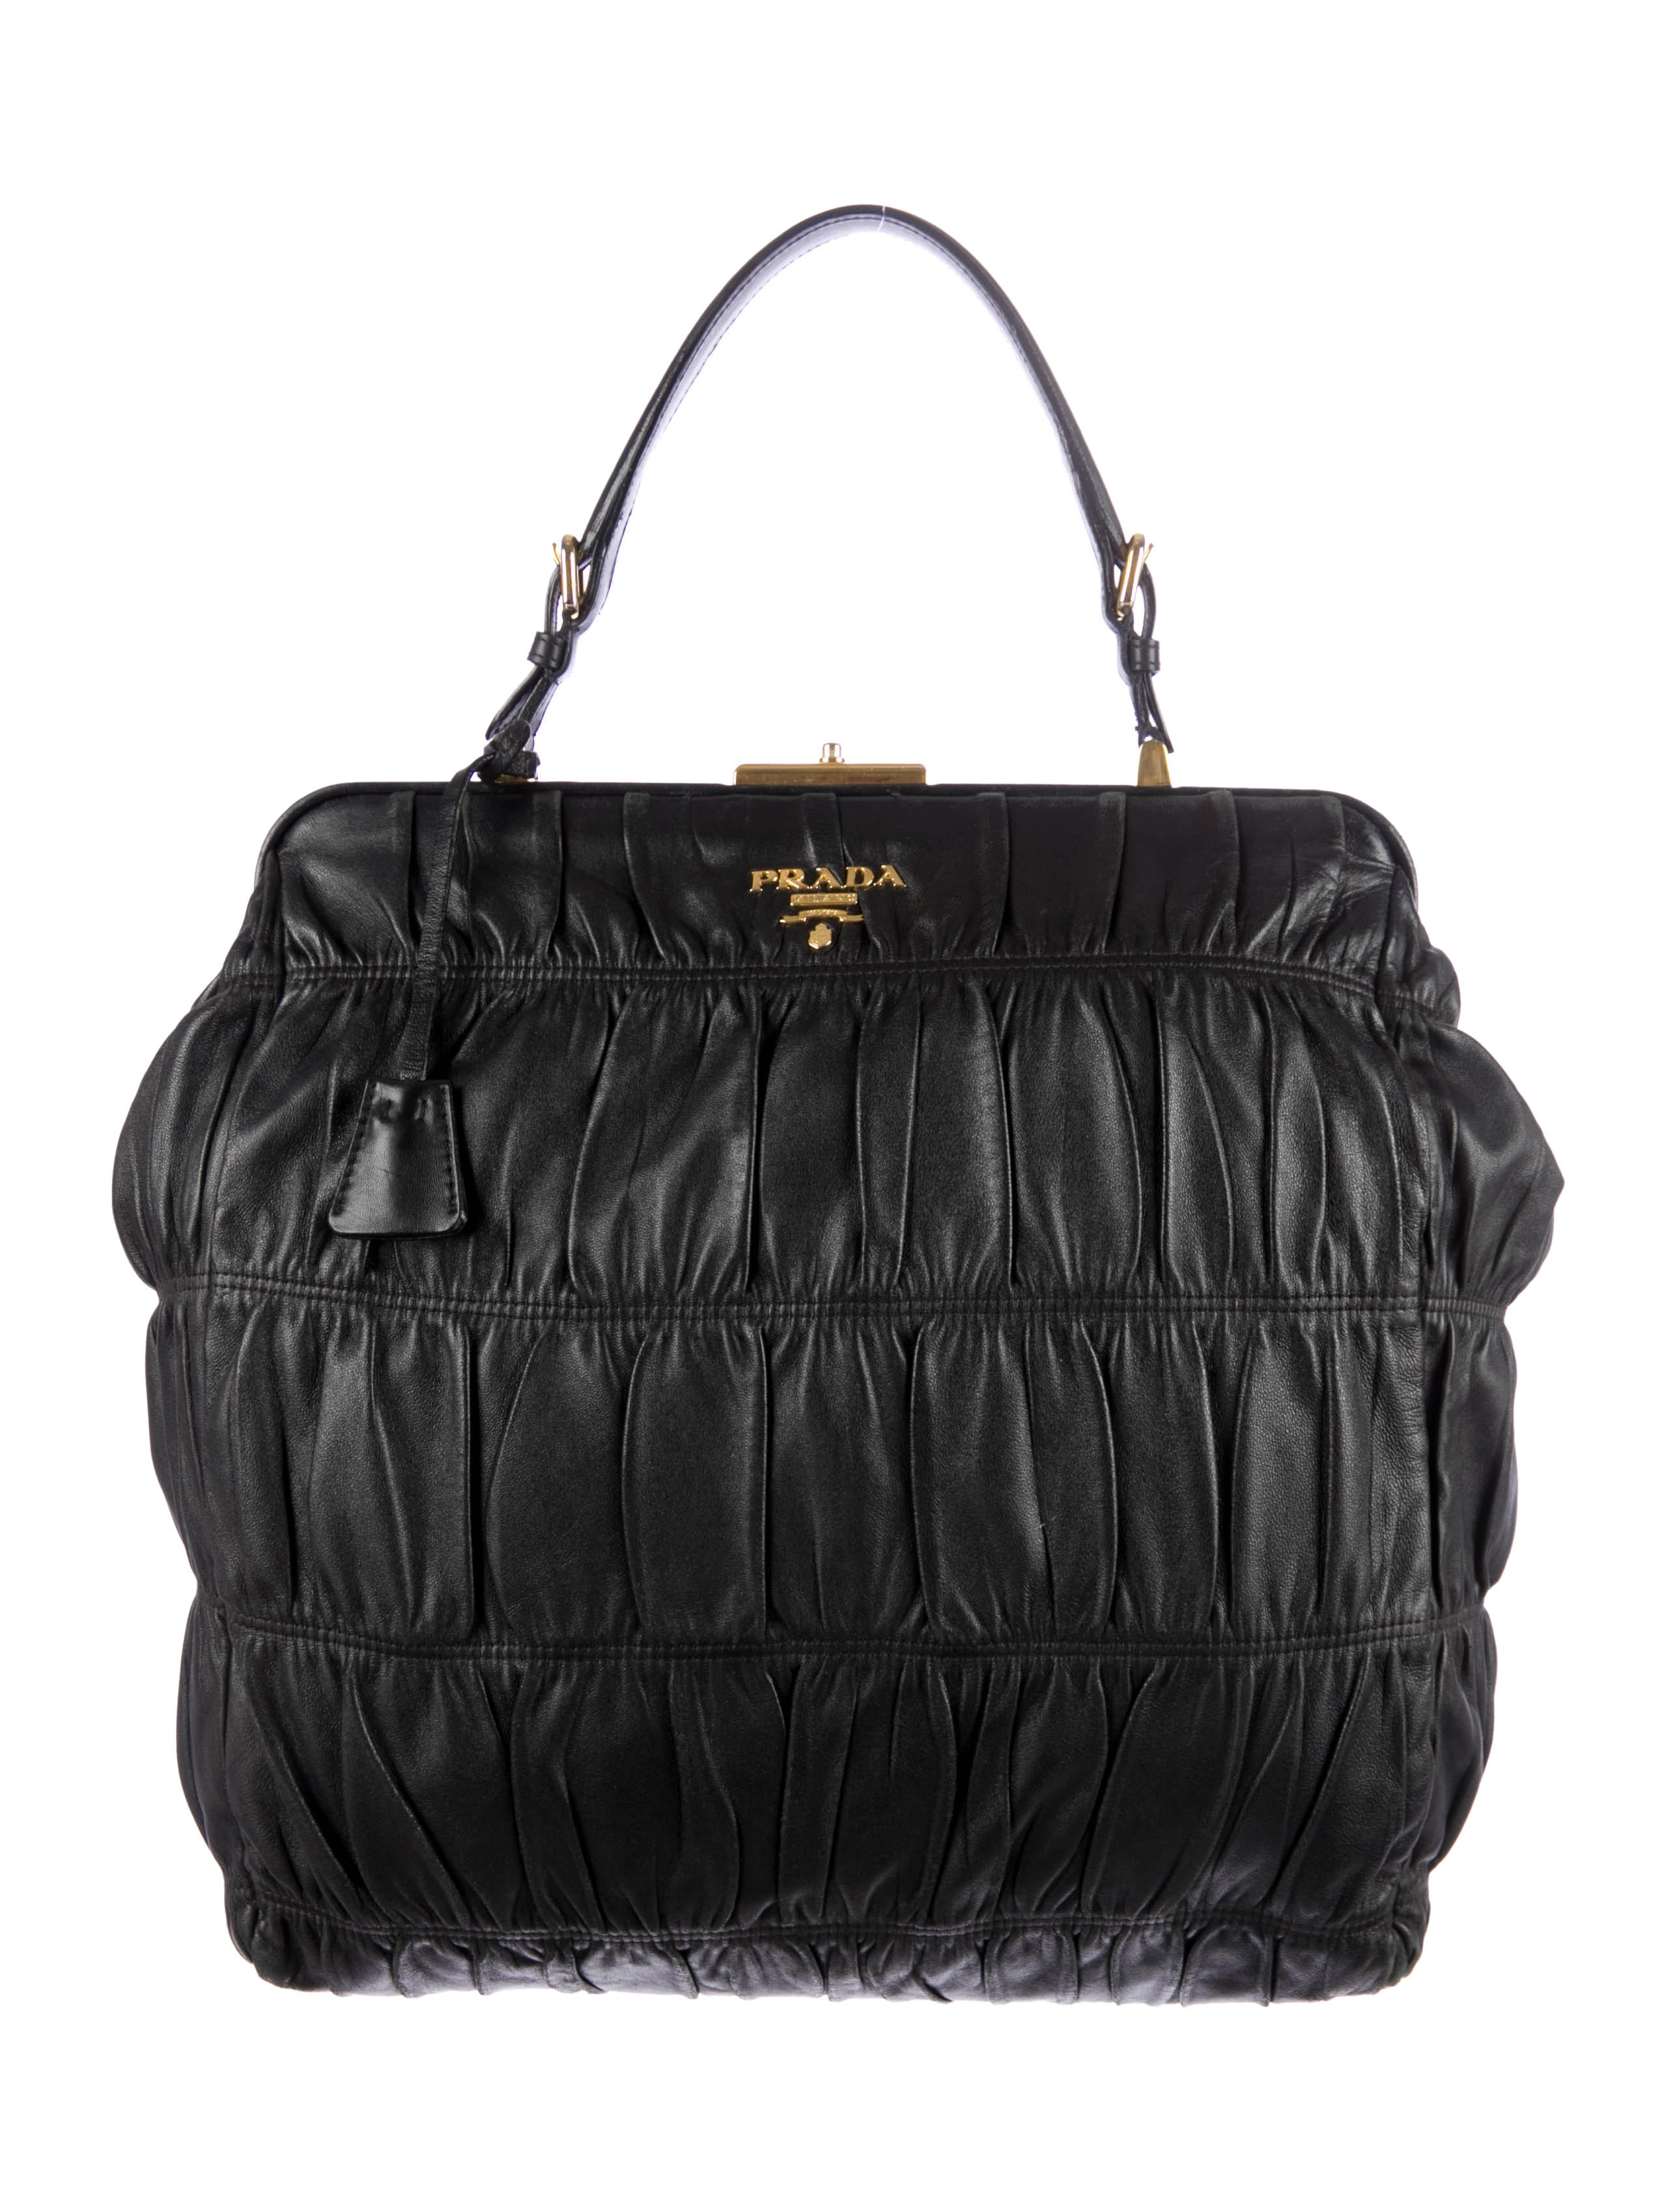 Prada Nappa Gaufre Bag - Handbags - PRA63084 | The RealReal